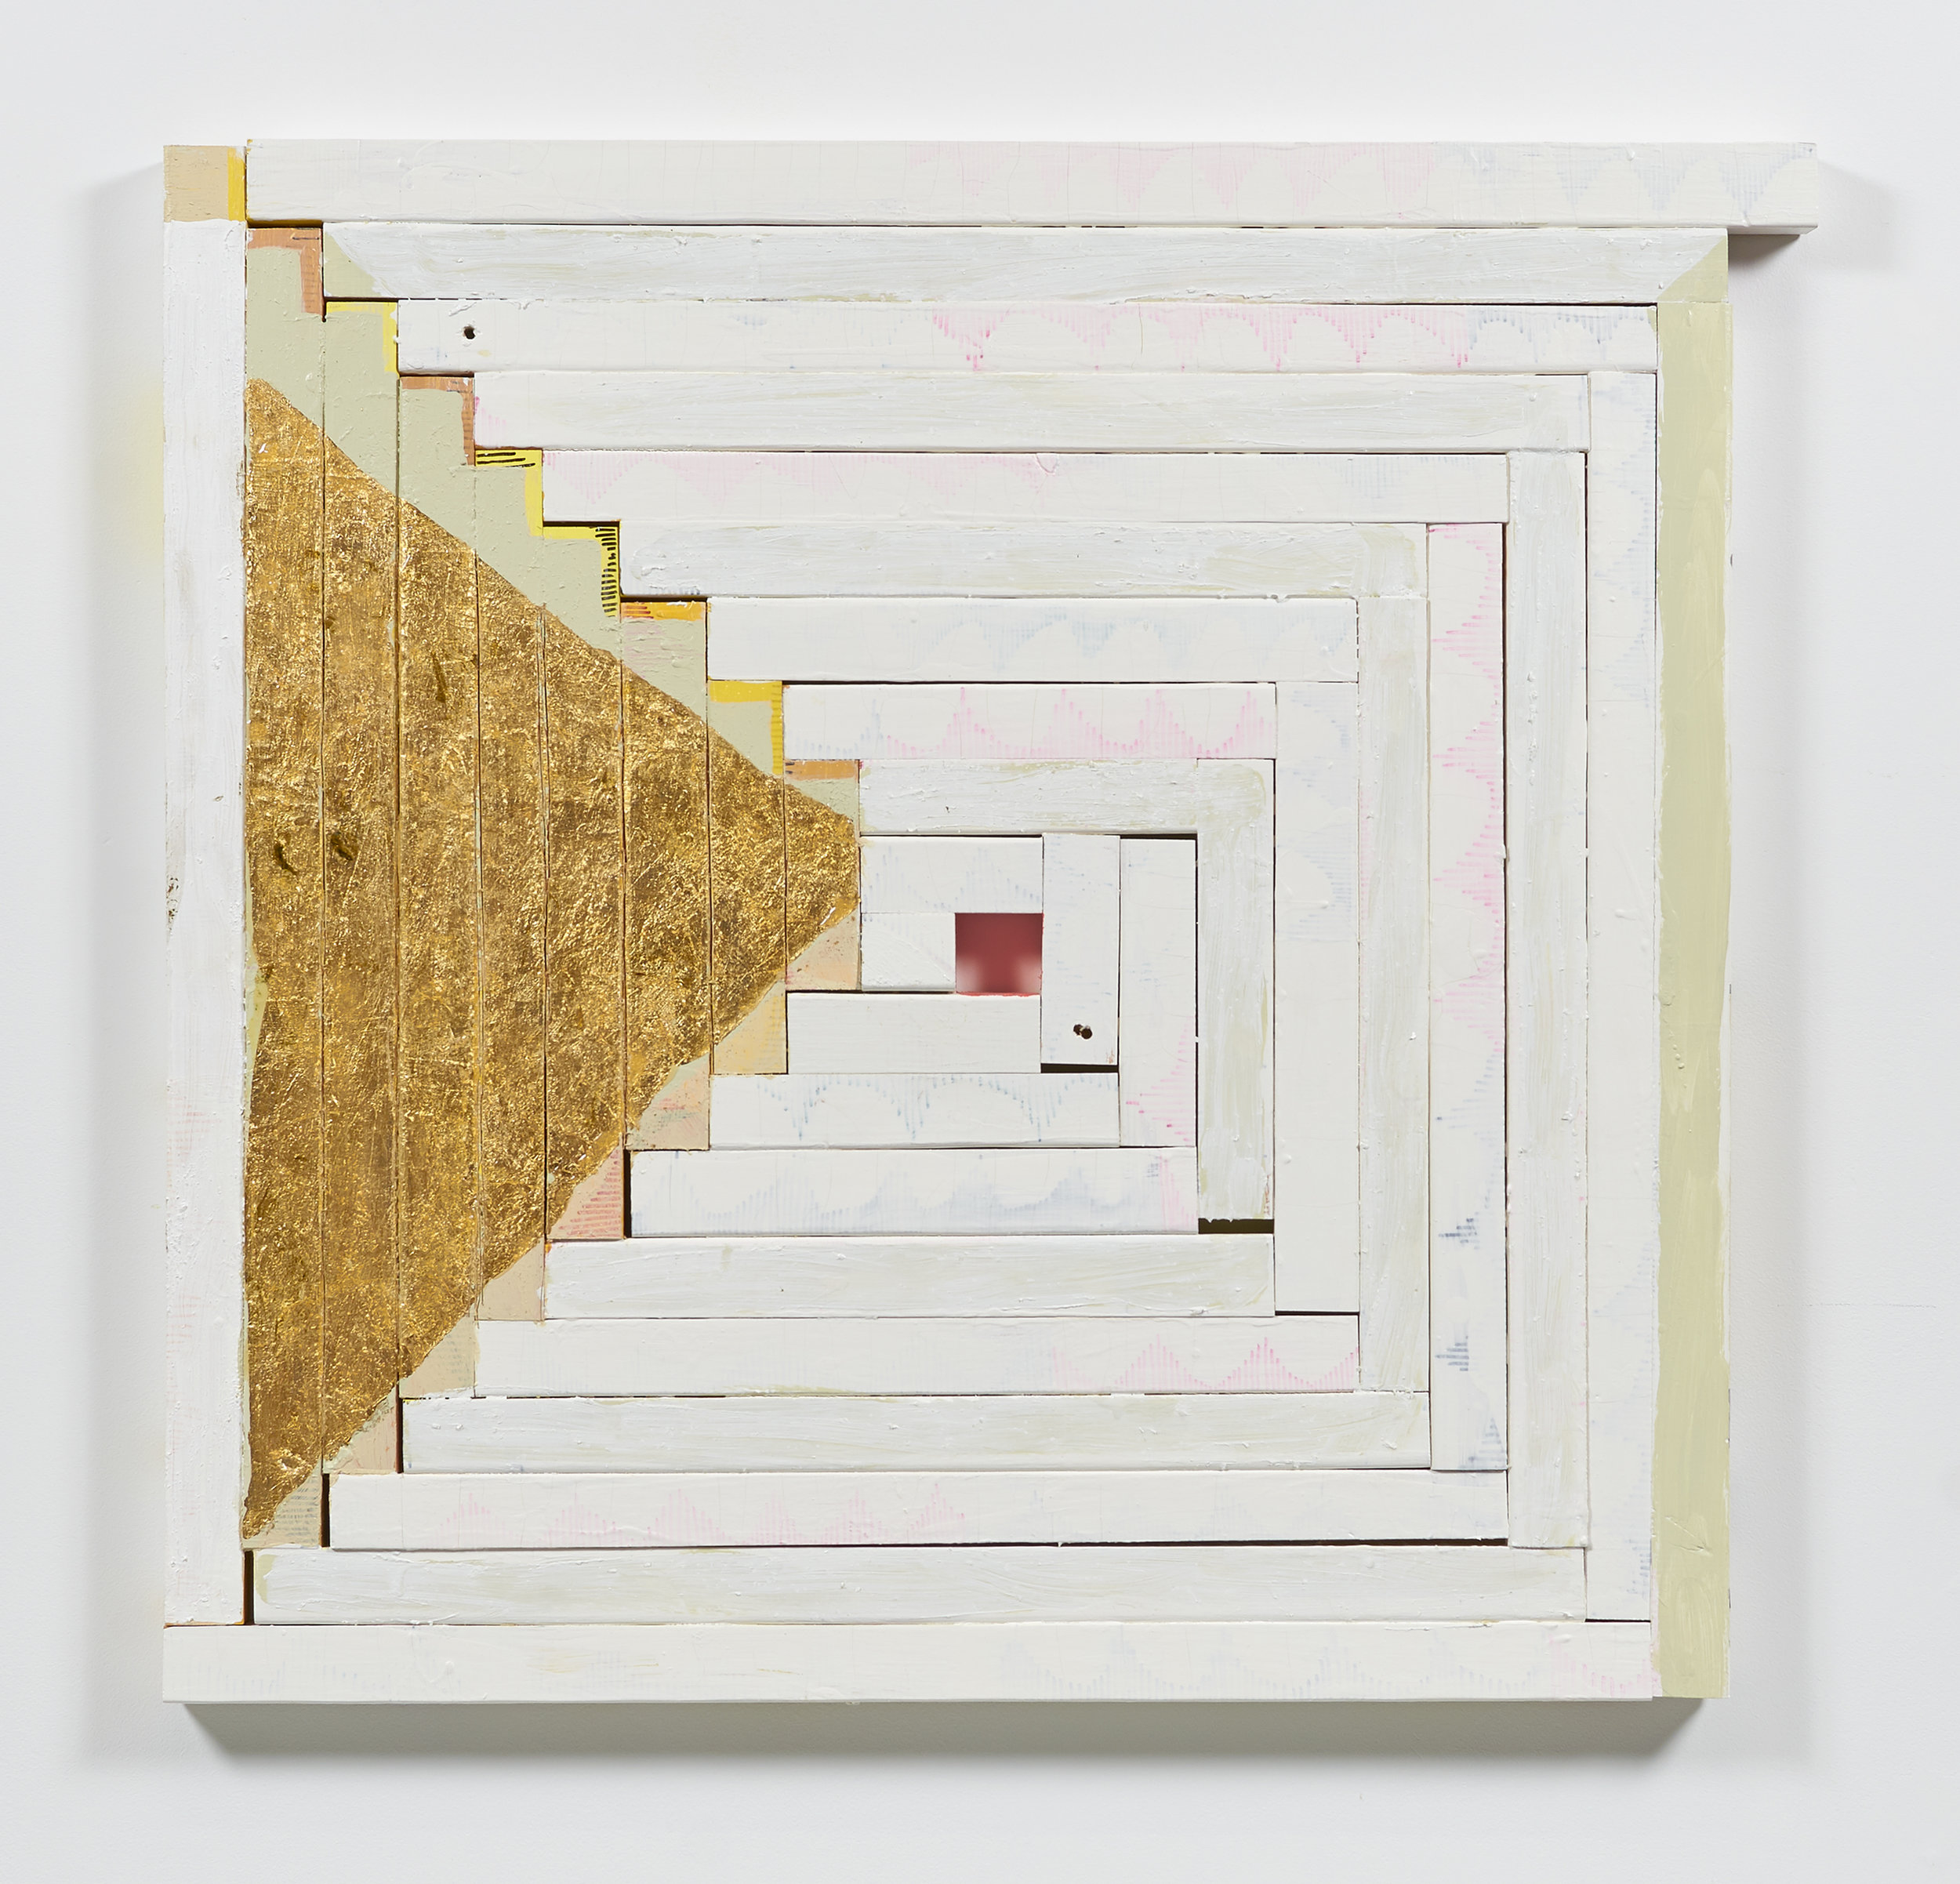 Clackered , 2014  Acrylic, gold leaf, shellac, and marker on wood  35 x 37 x 1 1/2 inches